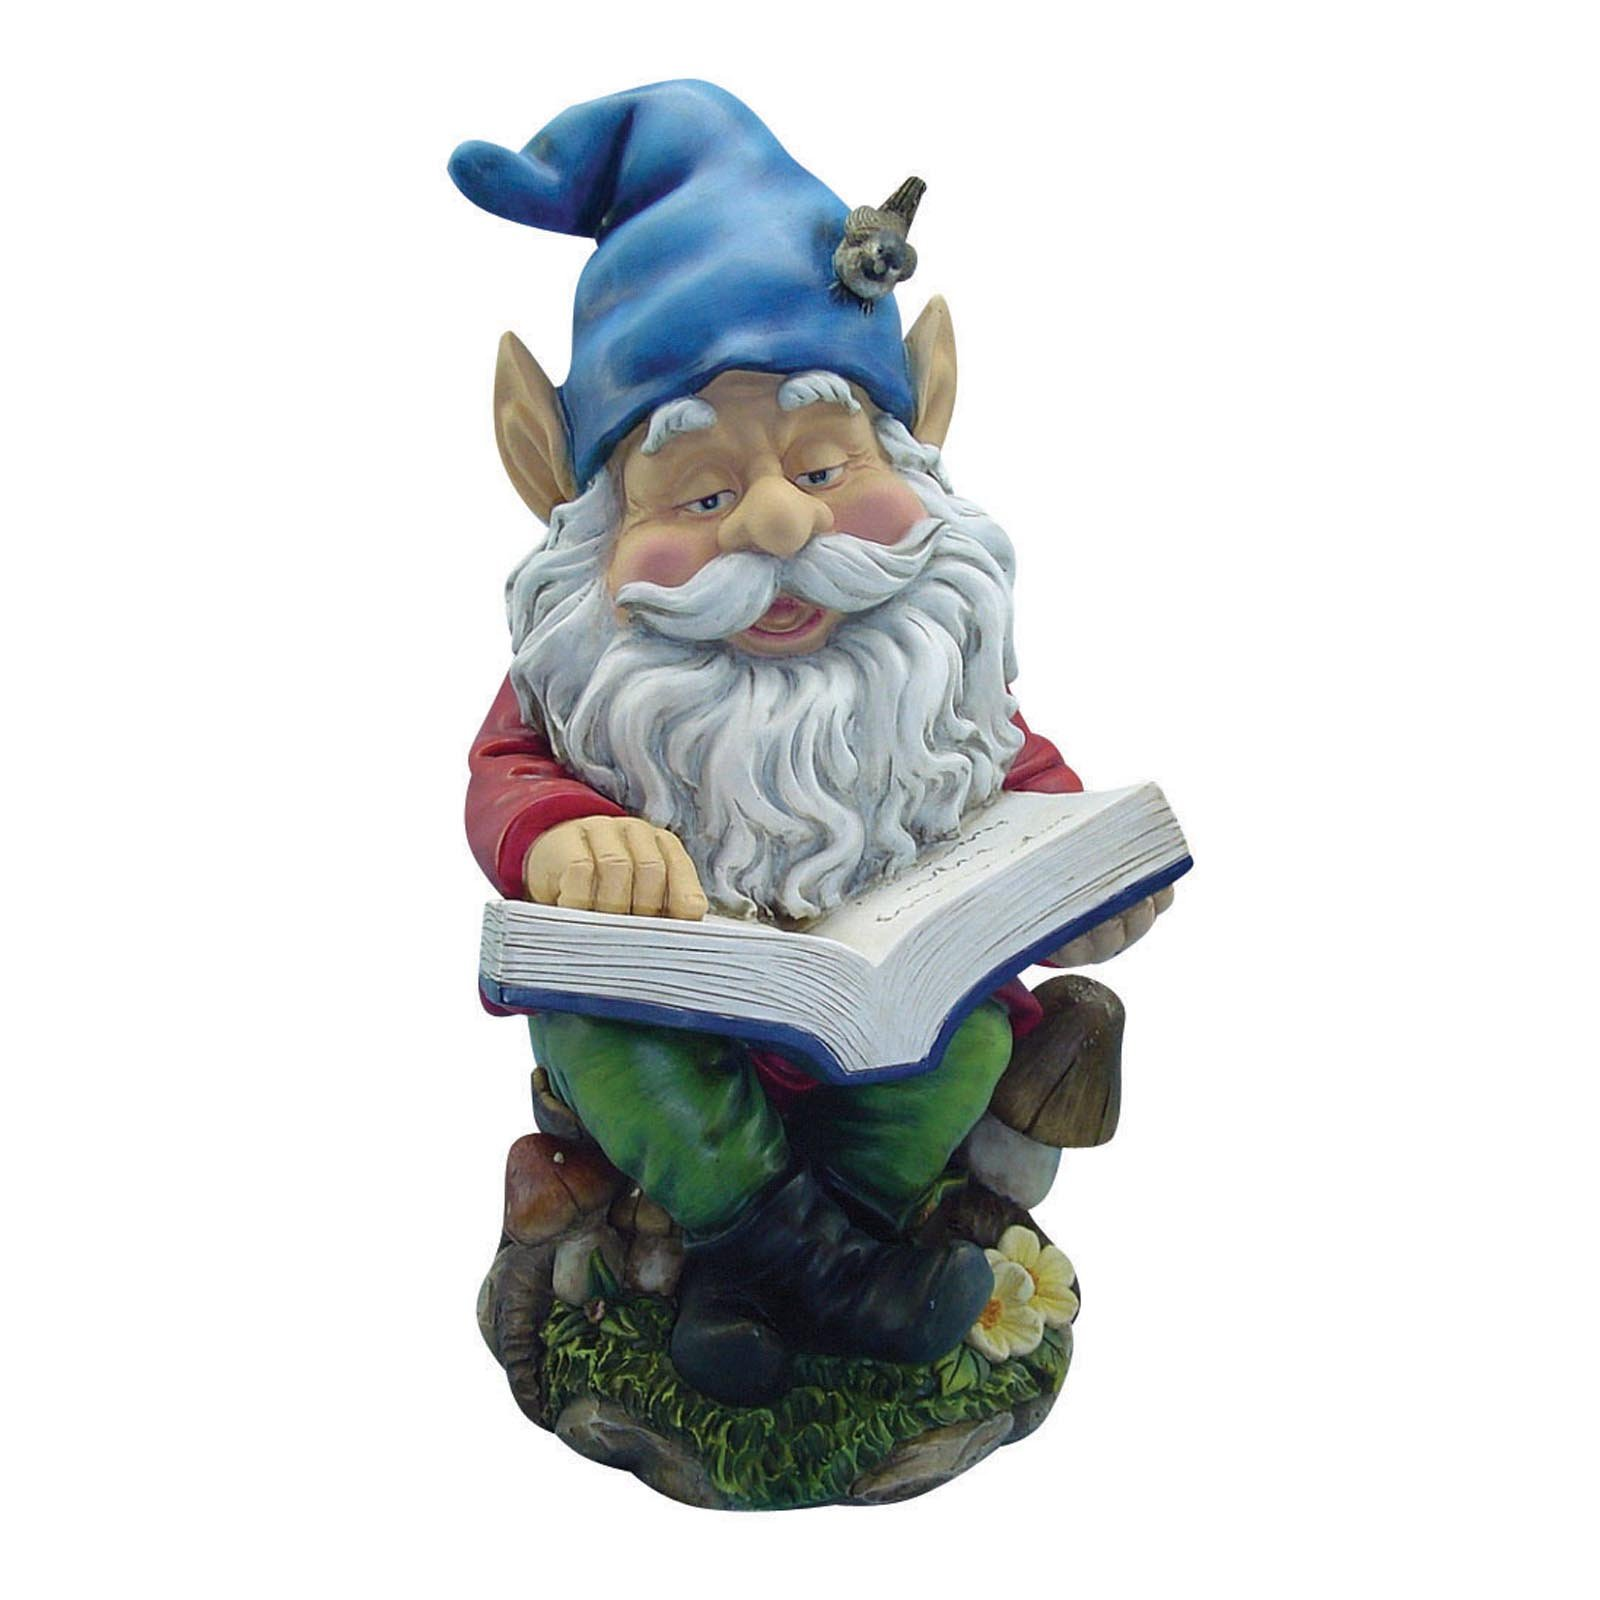 Gnome In Garden: Icelandic Penis Collections, Gnome Sanctuaries And Other